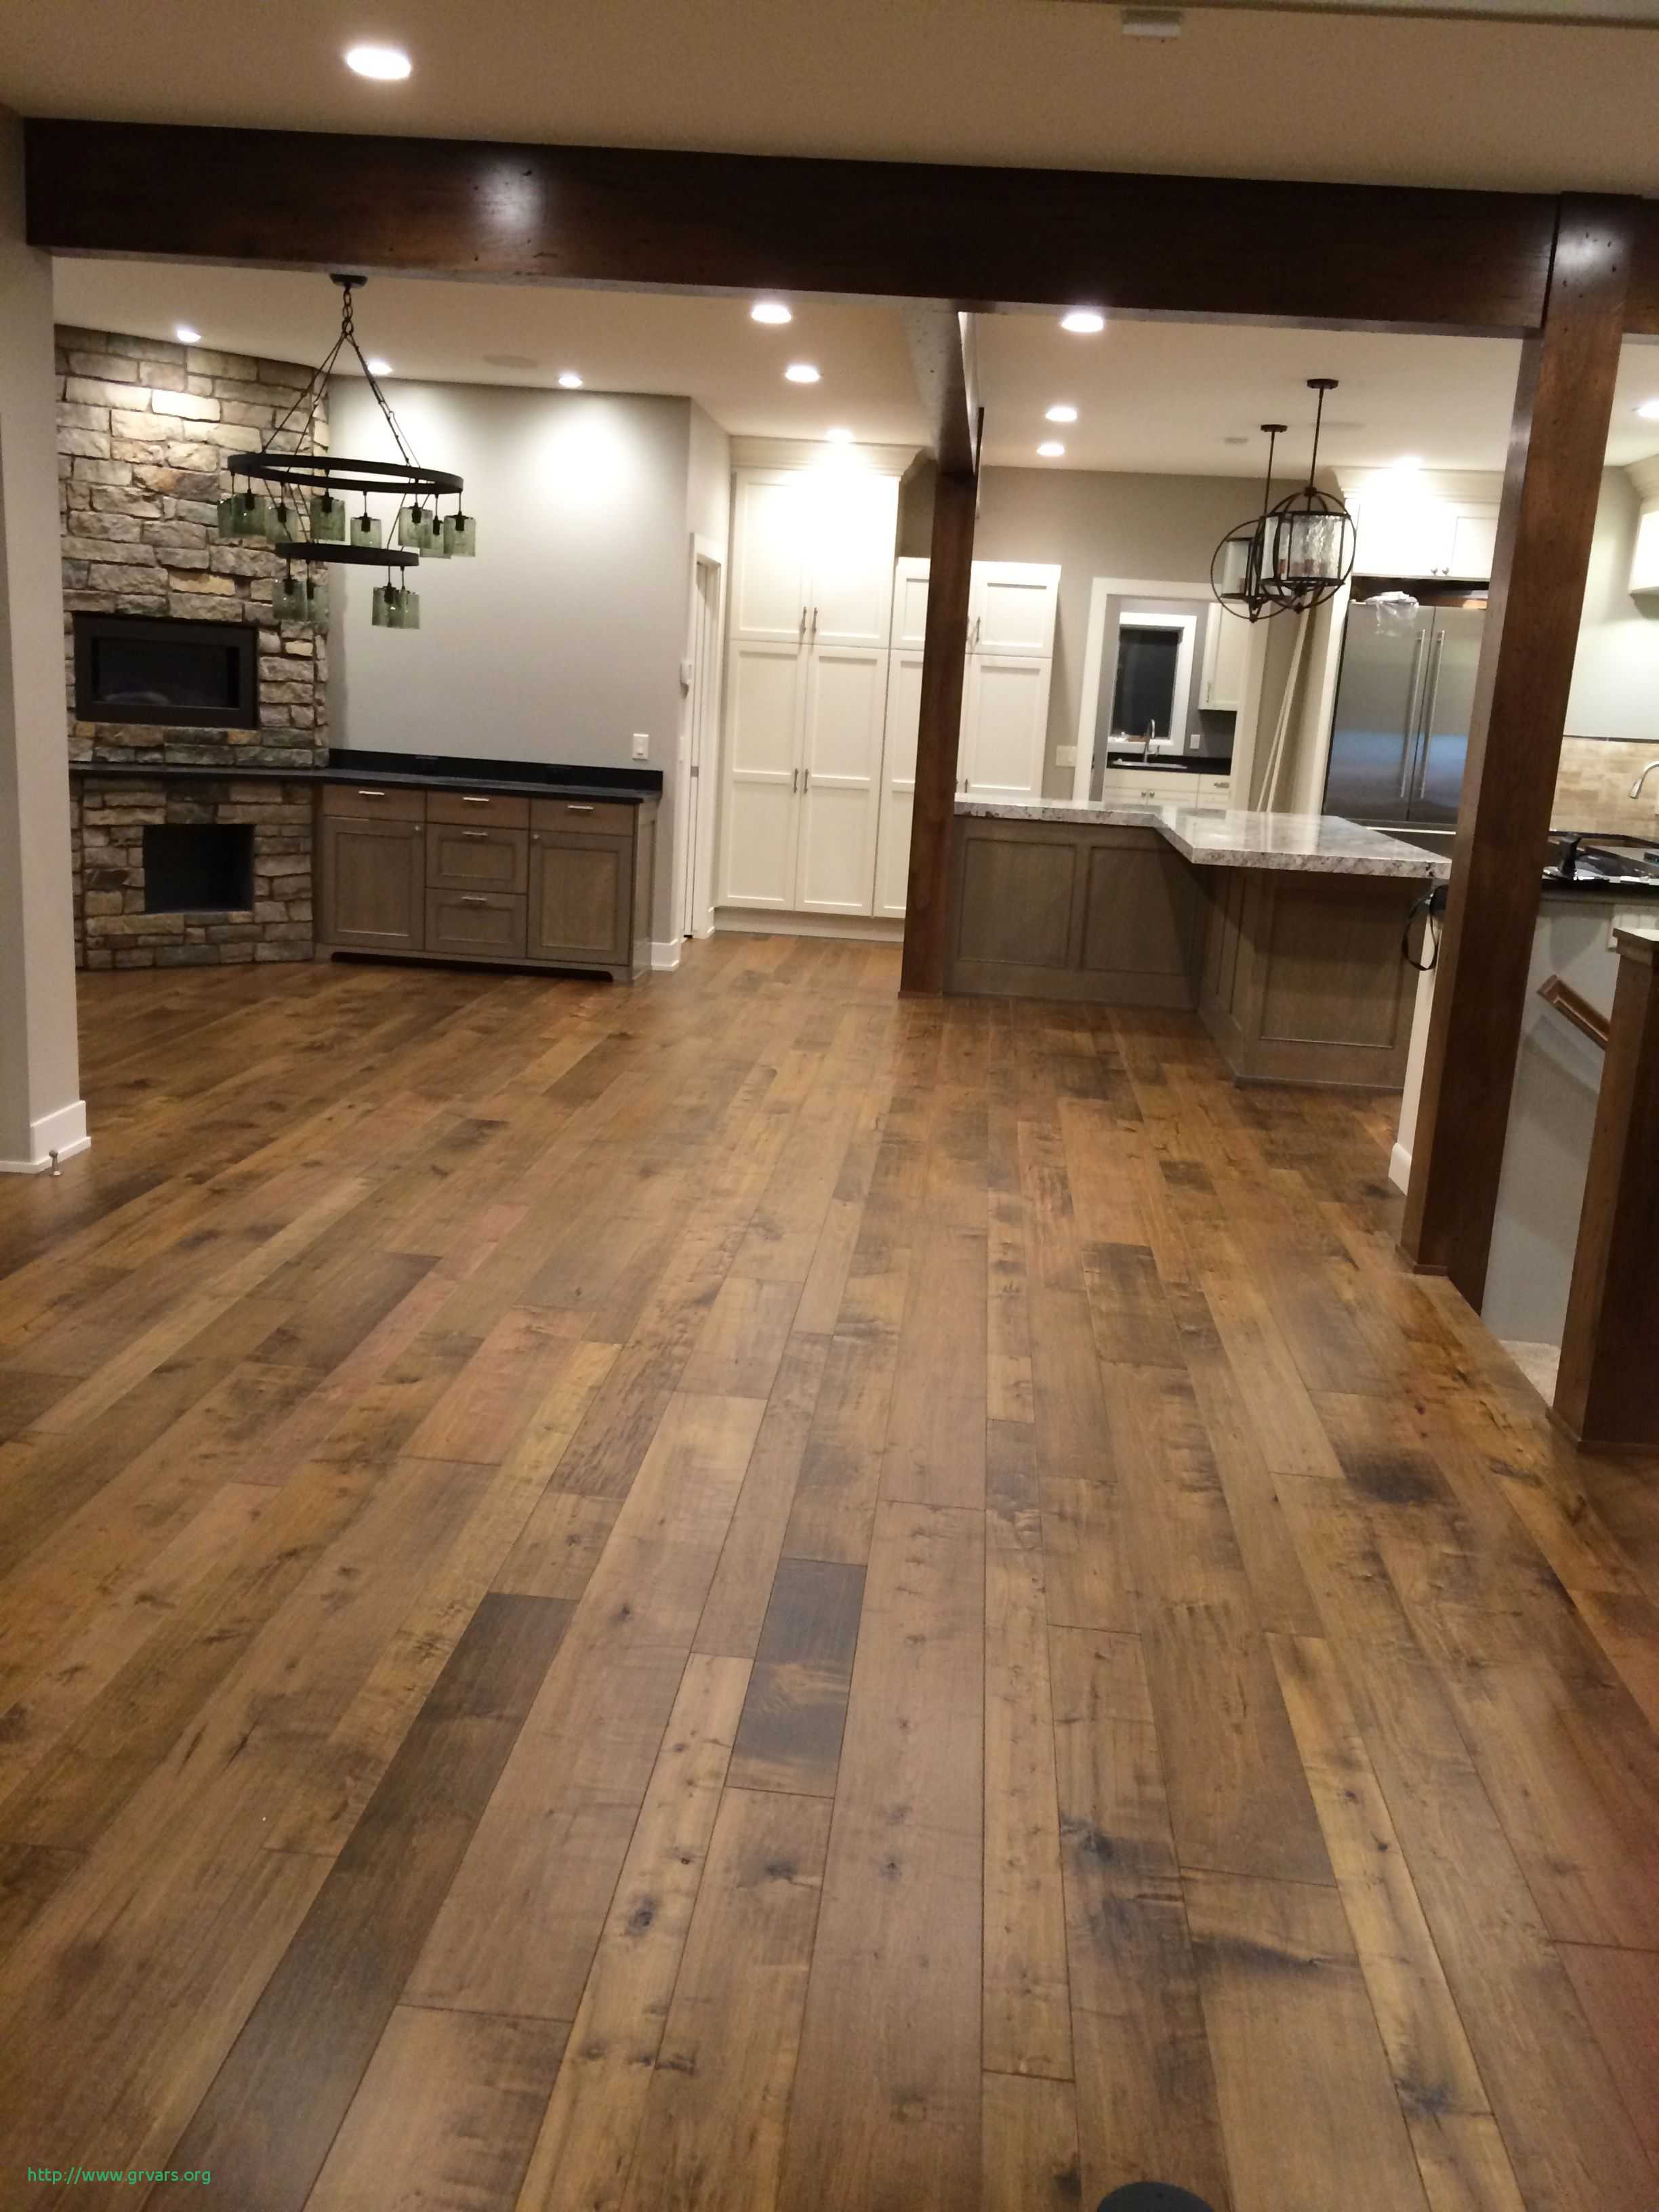 Walnut Hardwood Flooring Pros Cons Of 18 Frais How to Put Down Hardwood Flooring Ideas Blog Inside How to Put Down Hardwood Flooring Impressionnant Monterey Hardwood Collection Rooms and Spaces